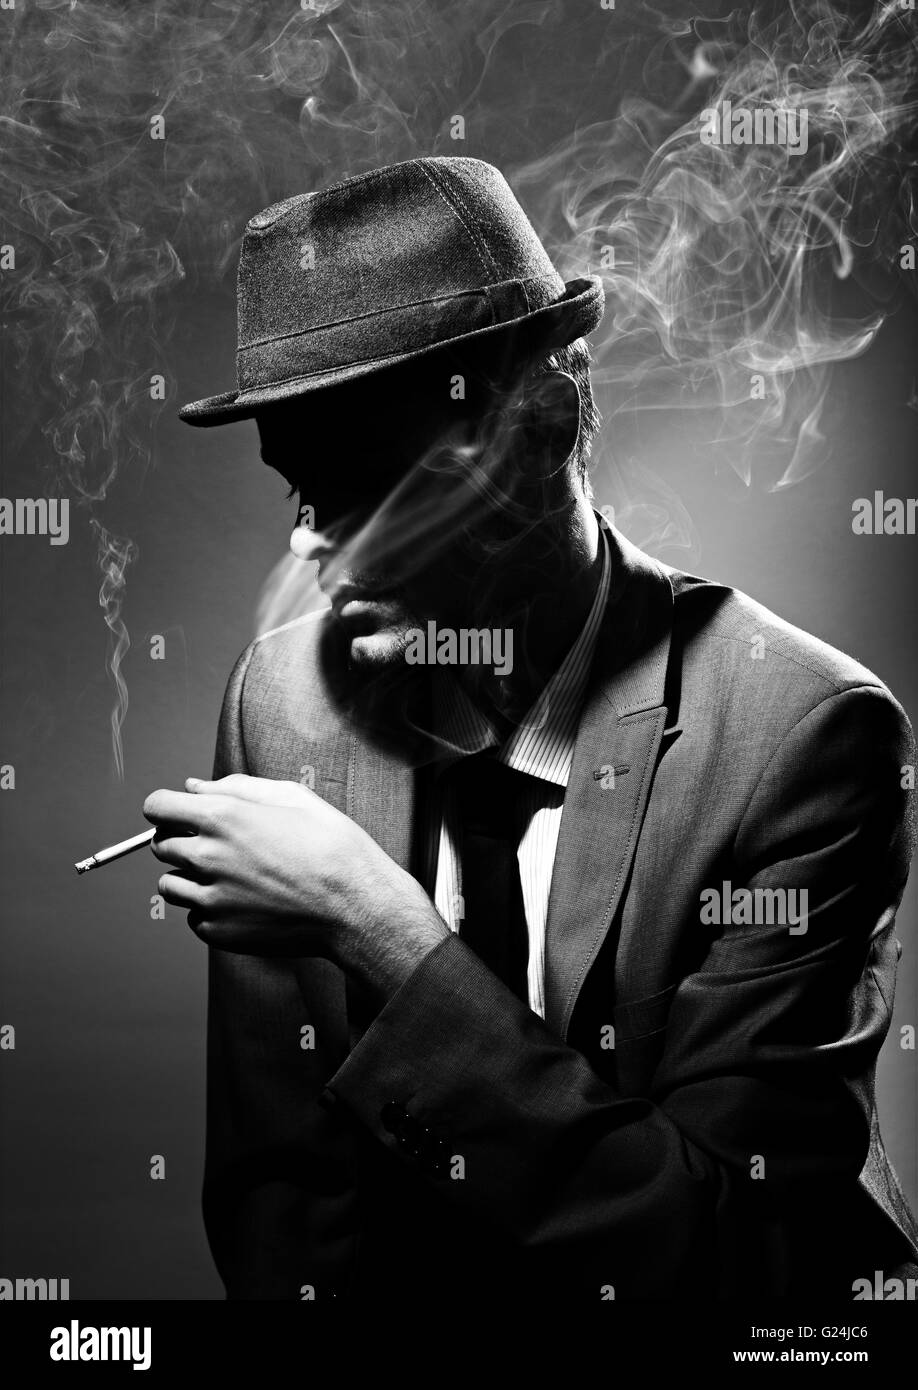 Black and white portrait of a man smoking a cigar stock photo